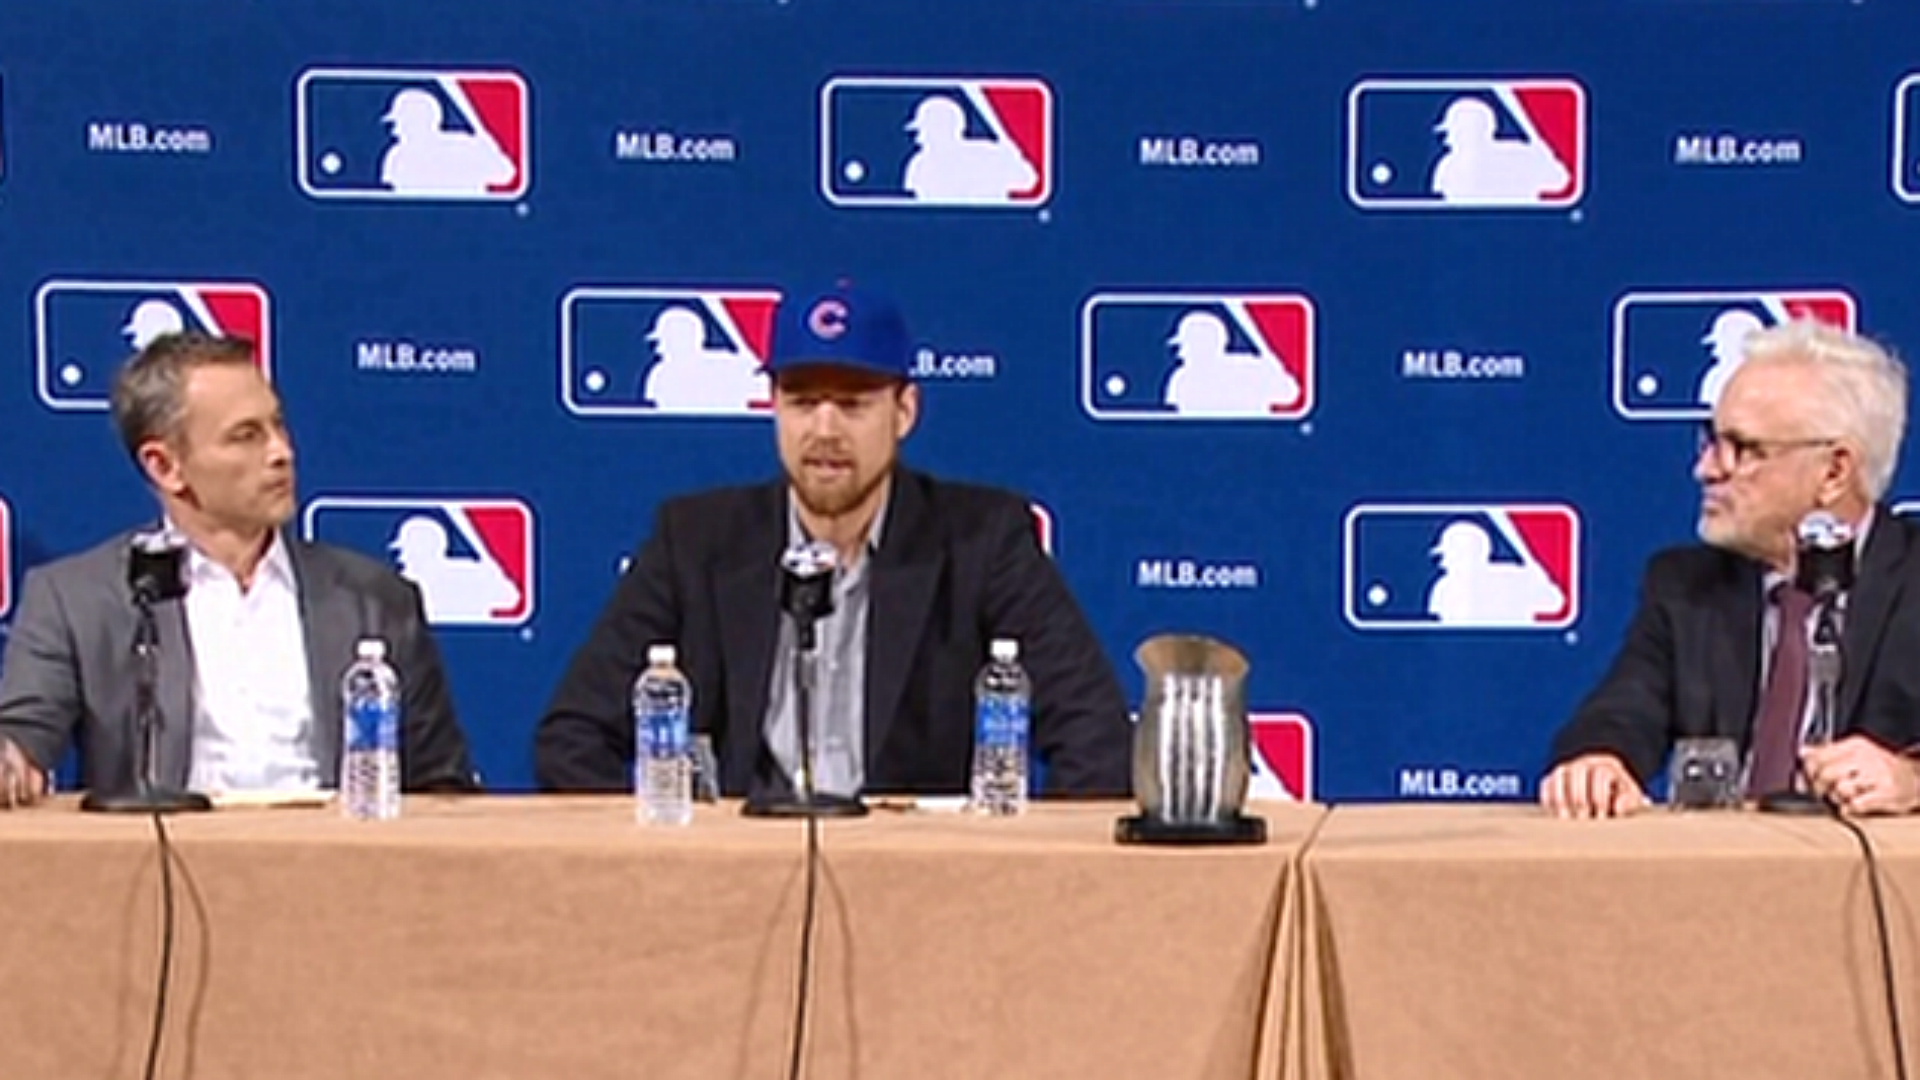 Ben Zobrist introduced as a member of the Cubs